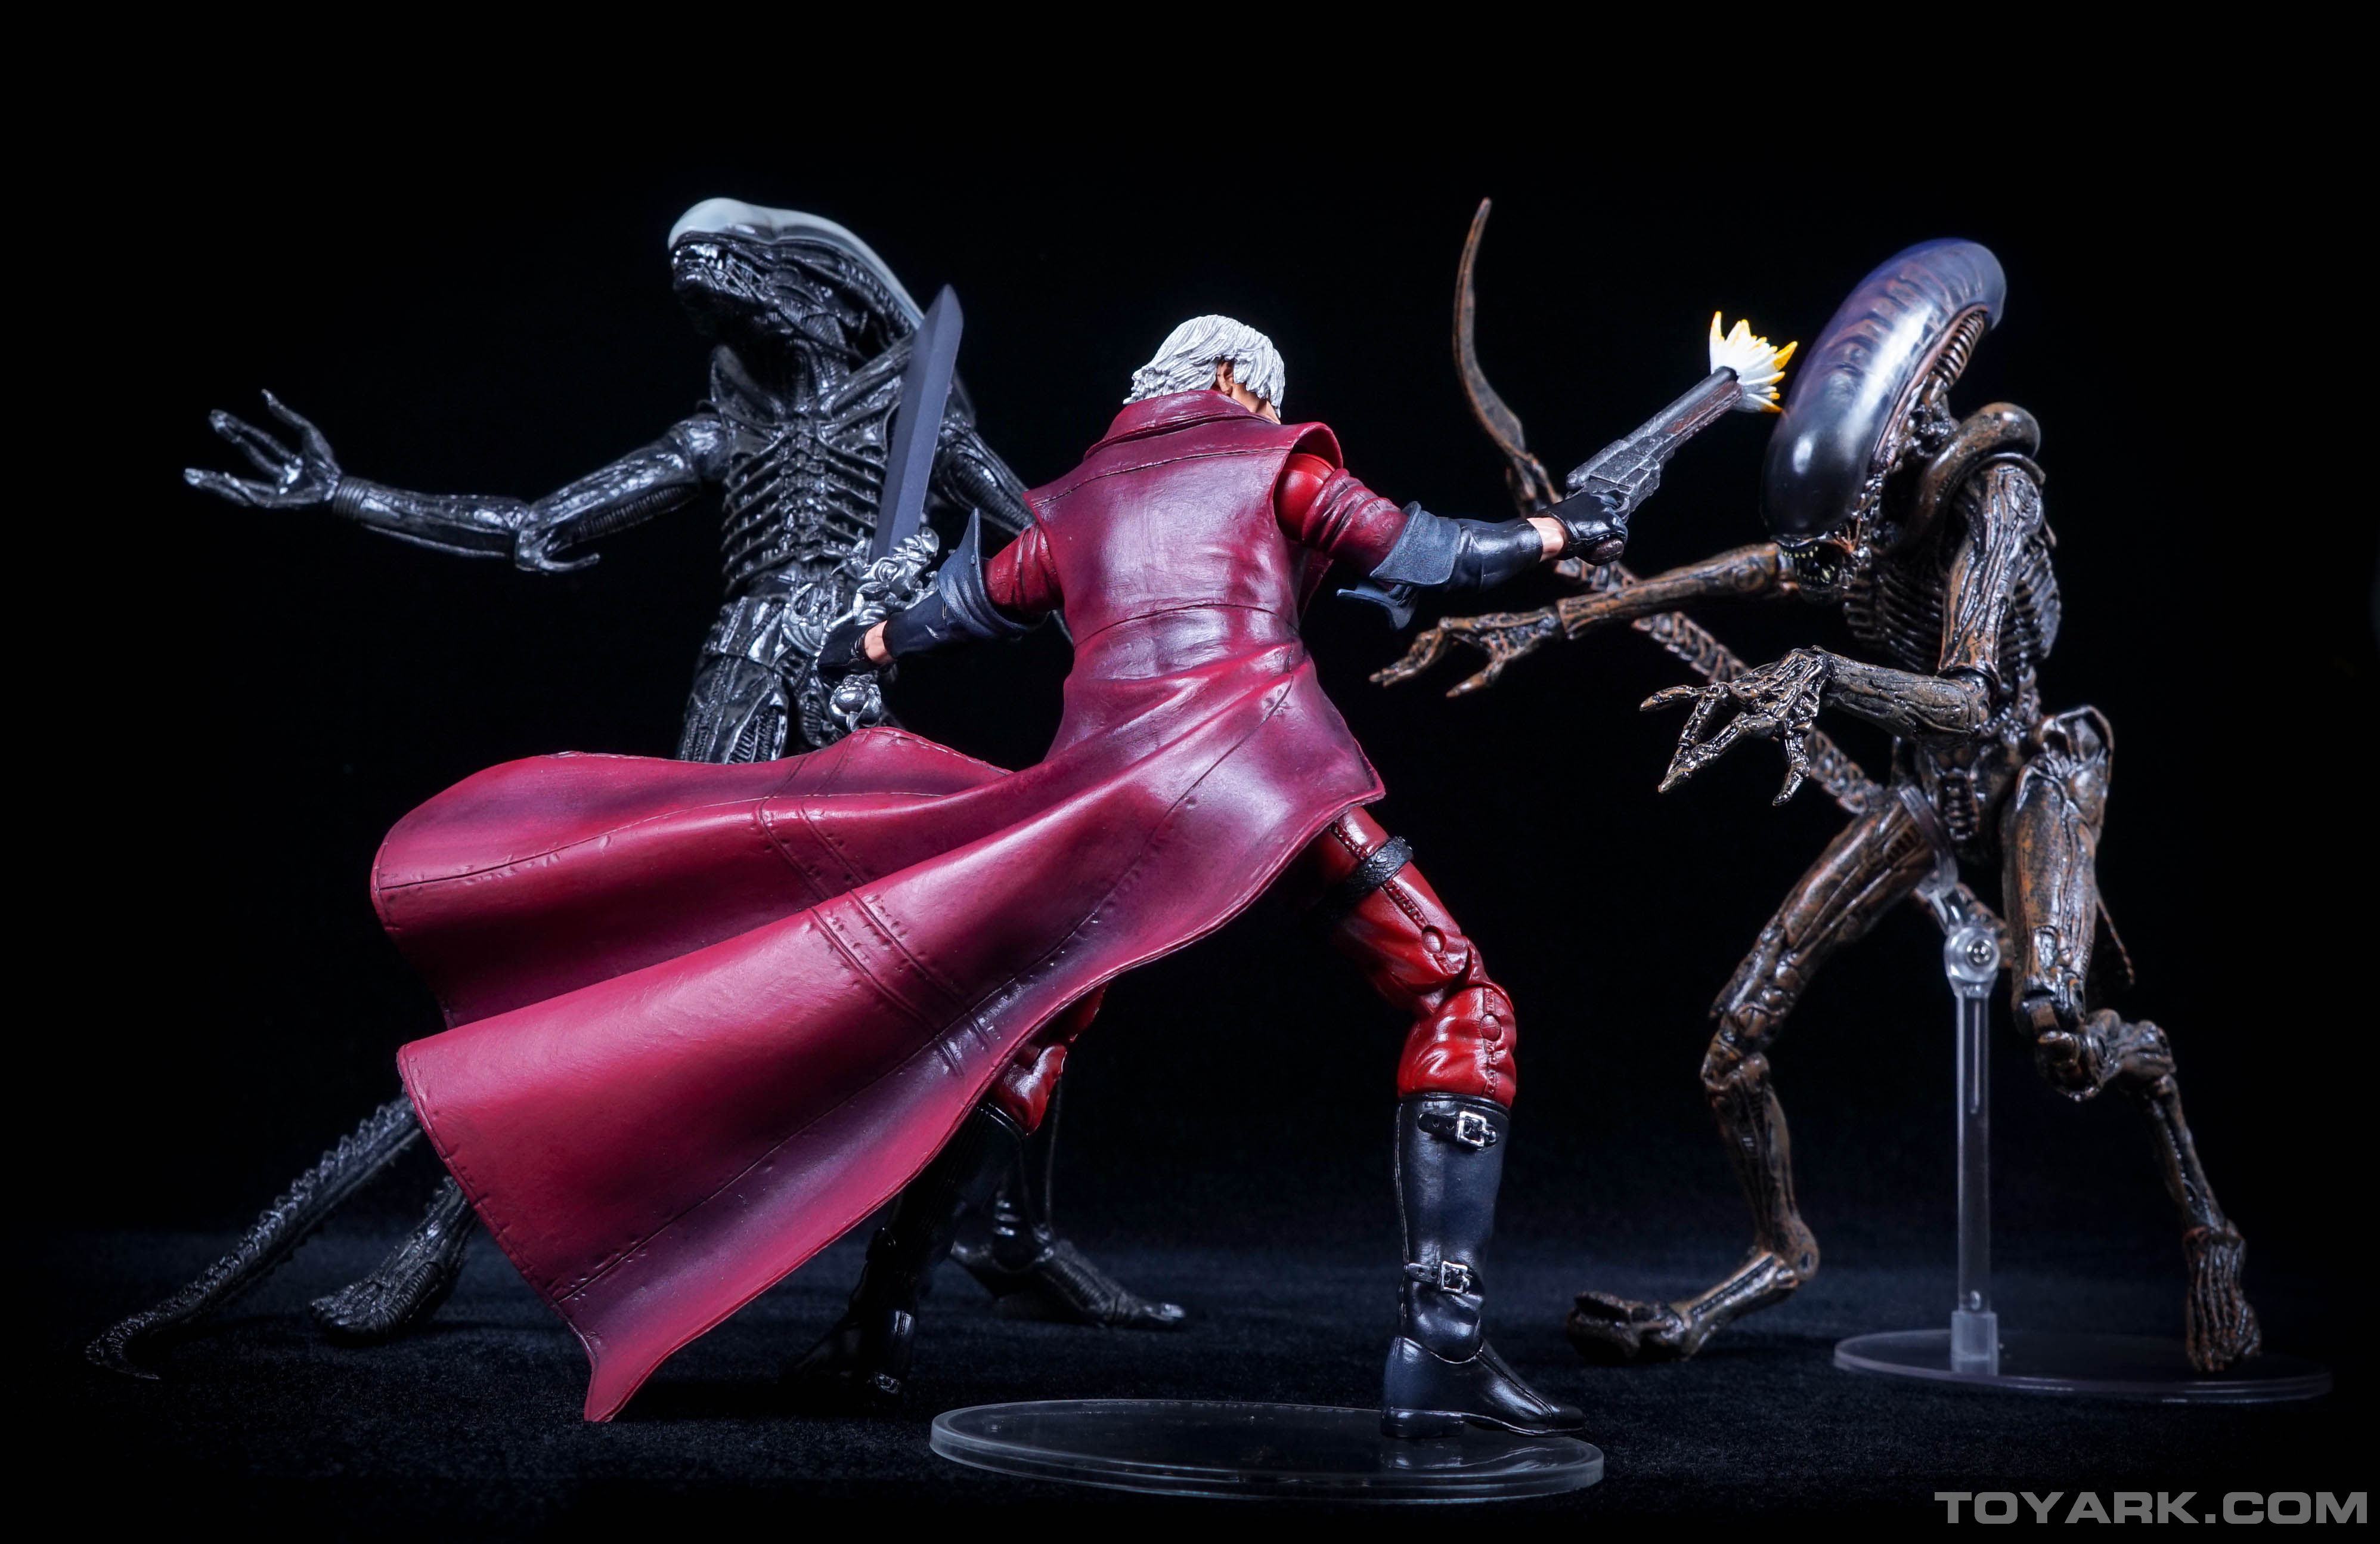 http://news.toyark.com/wp-content/uploads/sites/4/2015/06/NECA-Devil-May-Cry-Dante-047.jpg